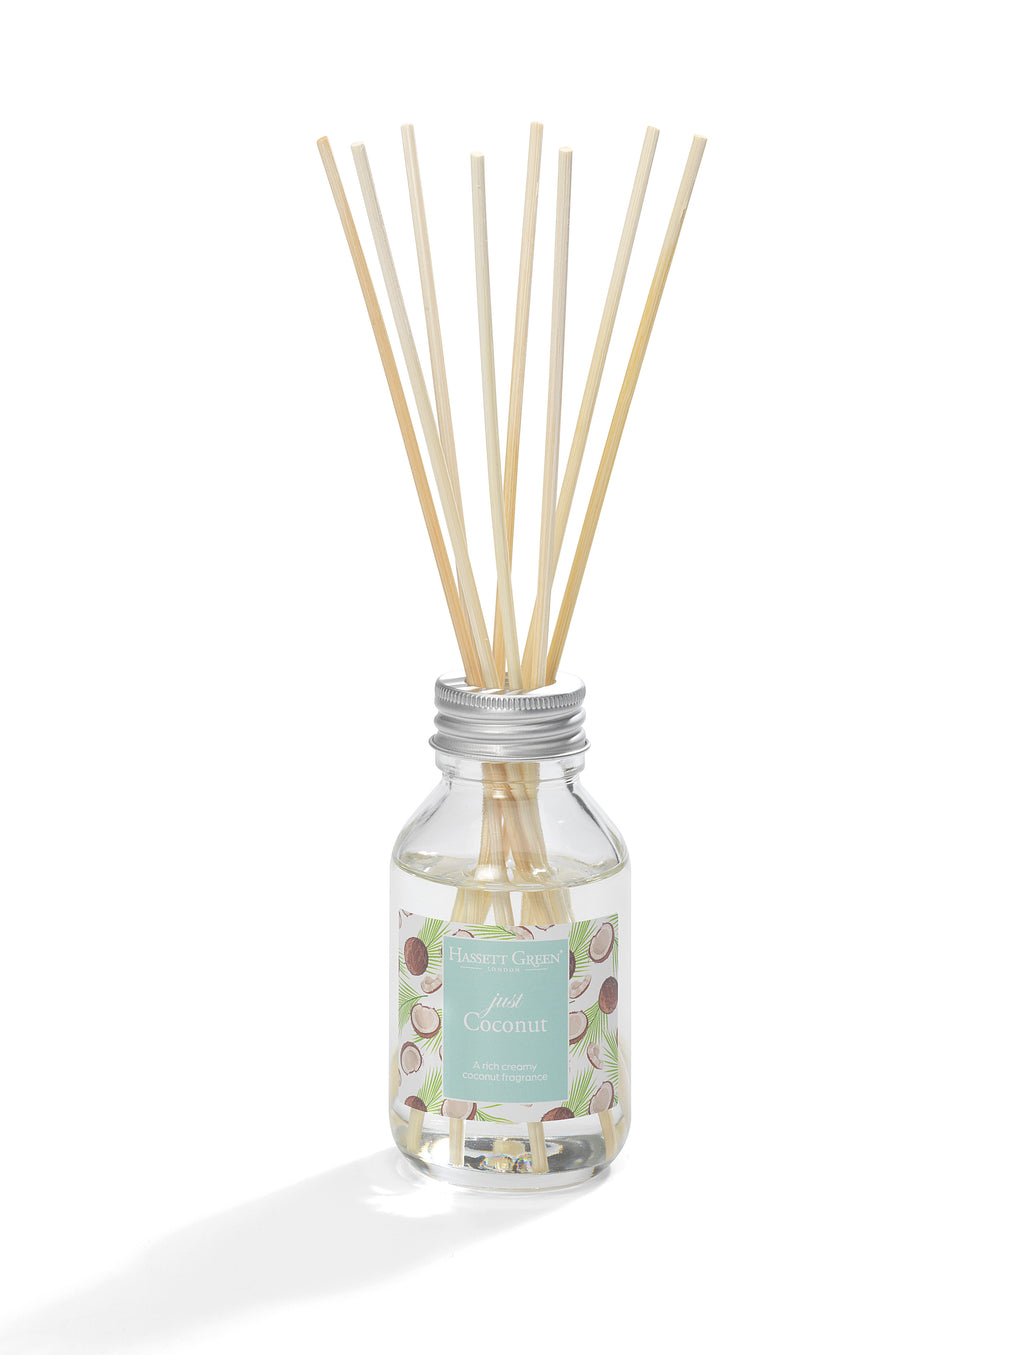 Just Coconut - Fragrance Reed Diffuser 100ml